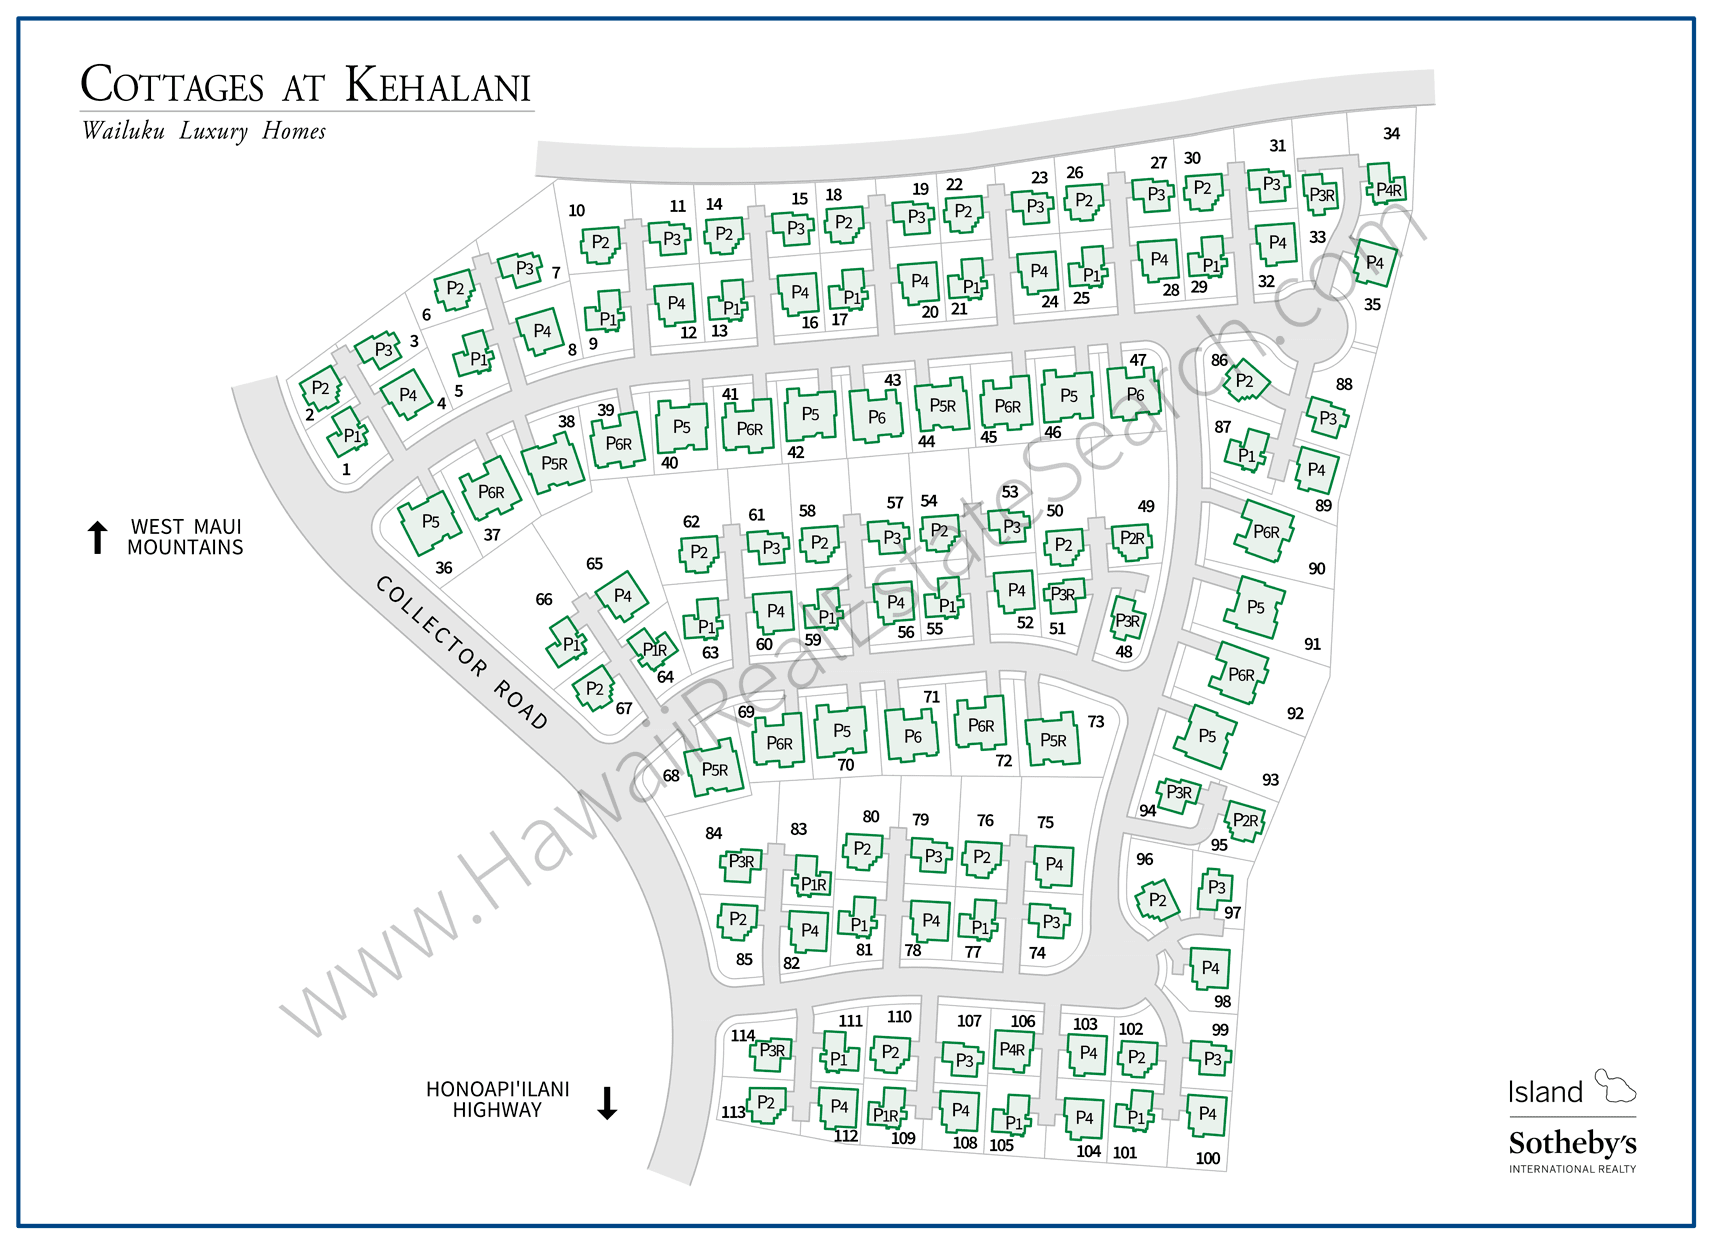 Cottages at Kehalani Property Map